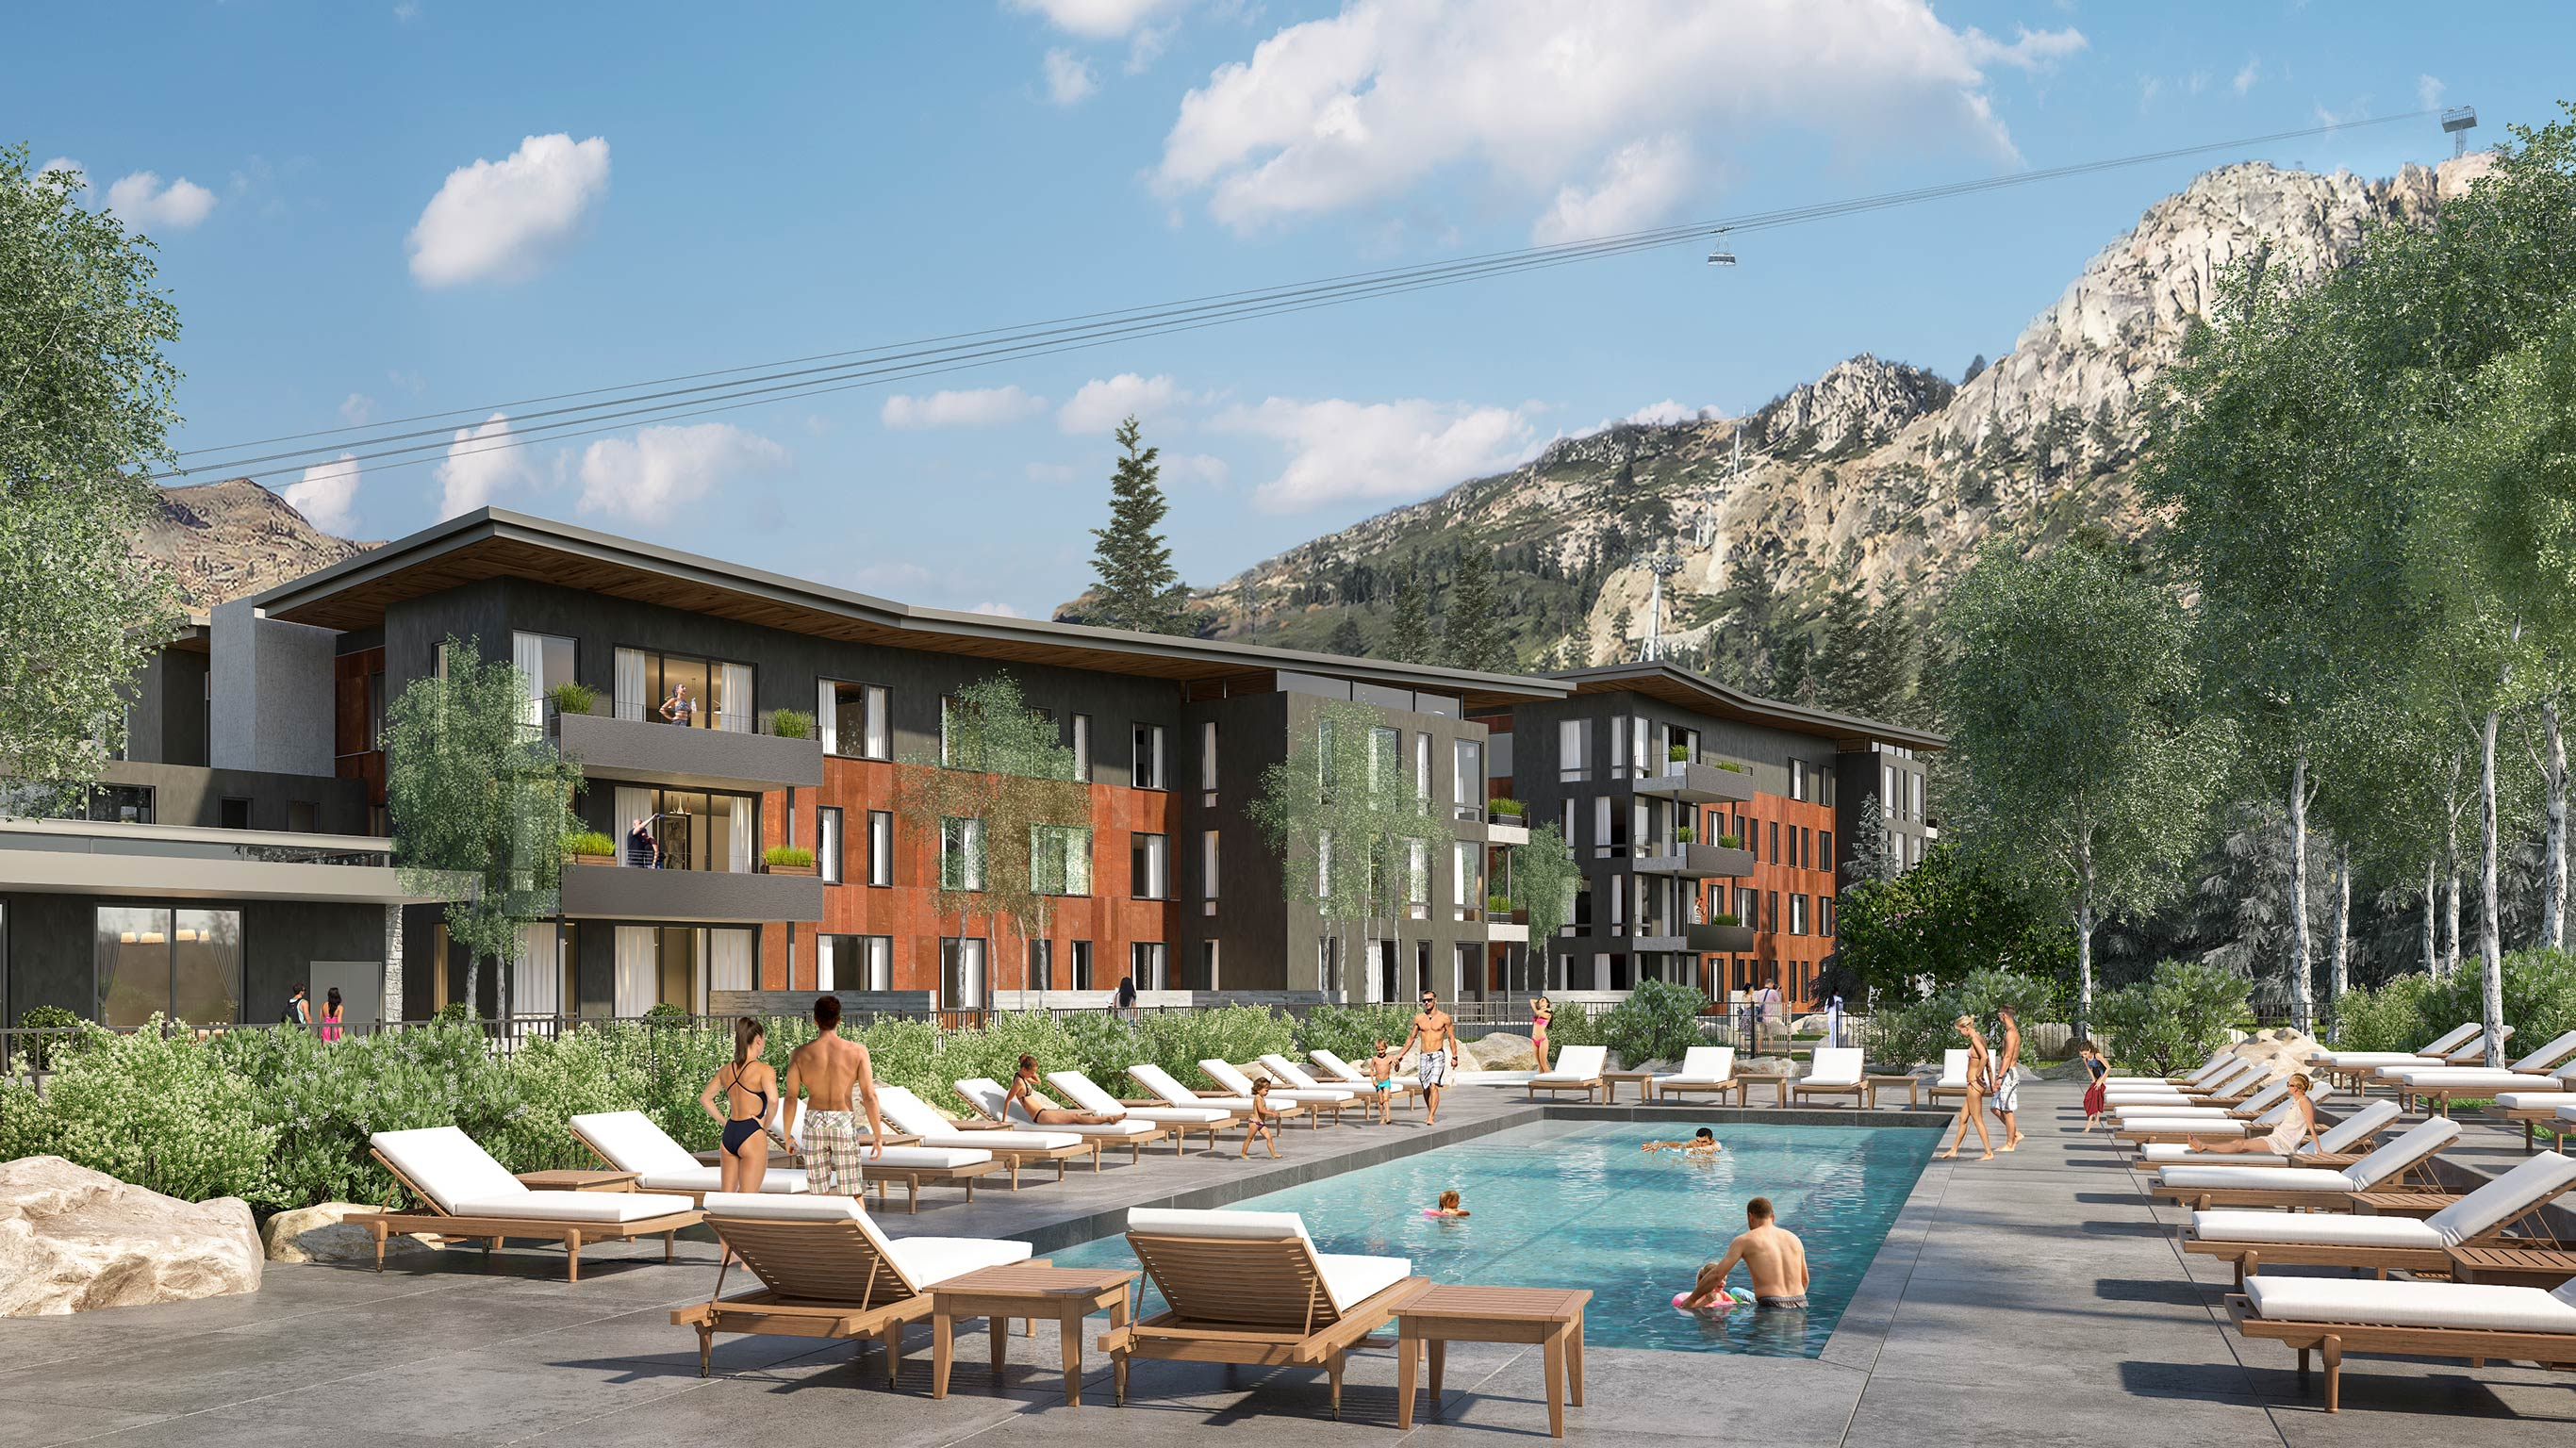 PlumpJack Squaw Valley Classic Style Homes in Lake Tahoe